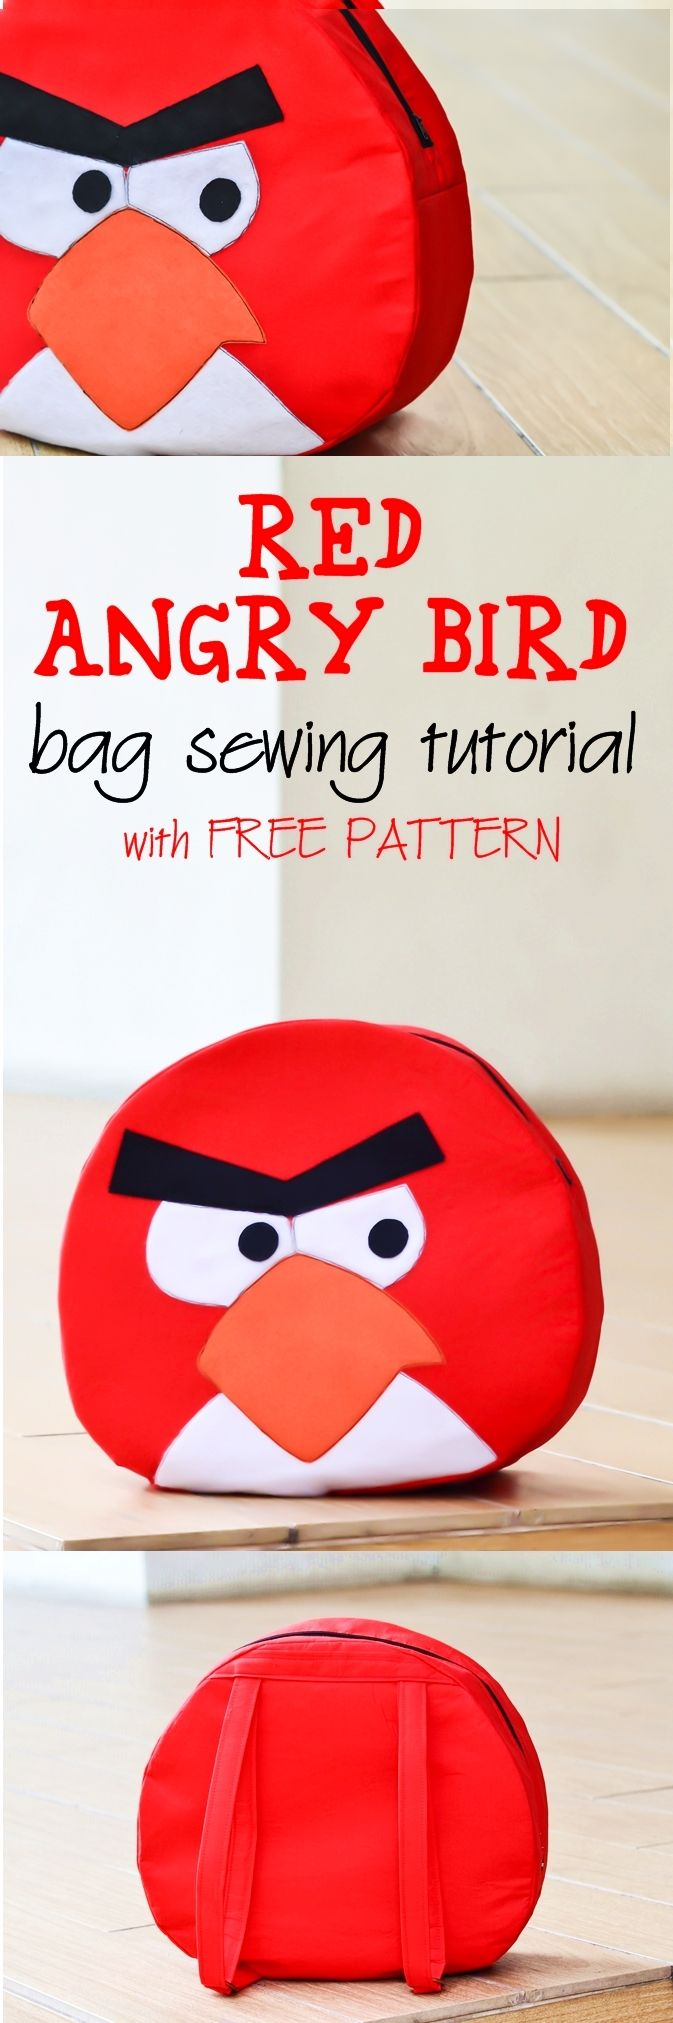 How to make Angry Birds Bag with FREE PATTERN on sewsomestuff.com